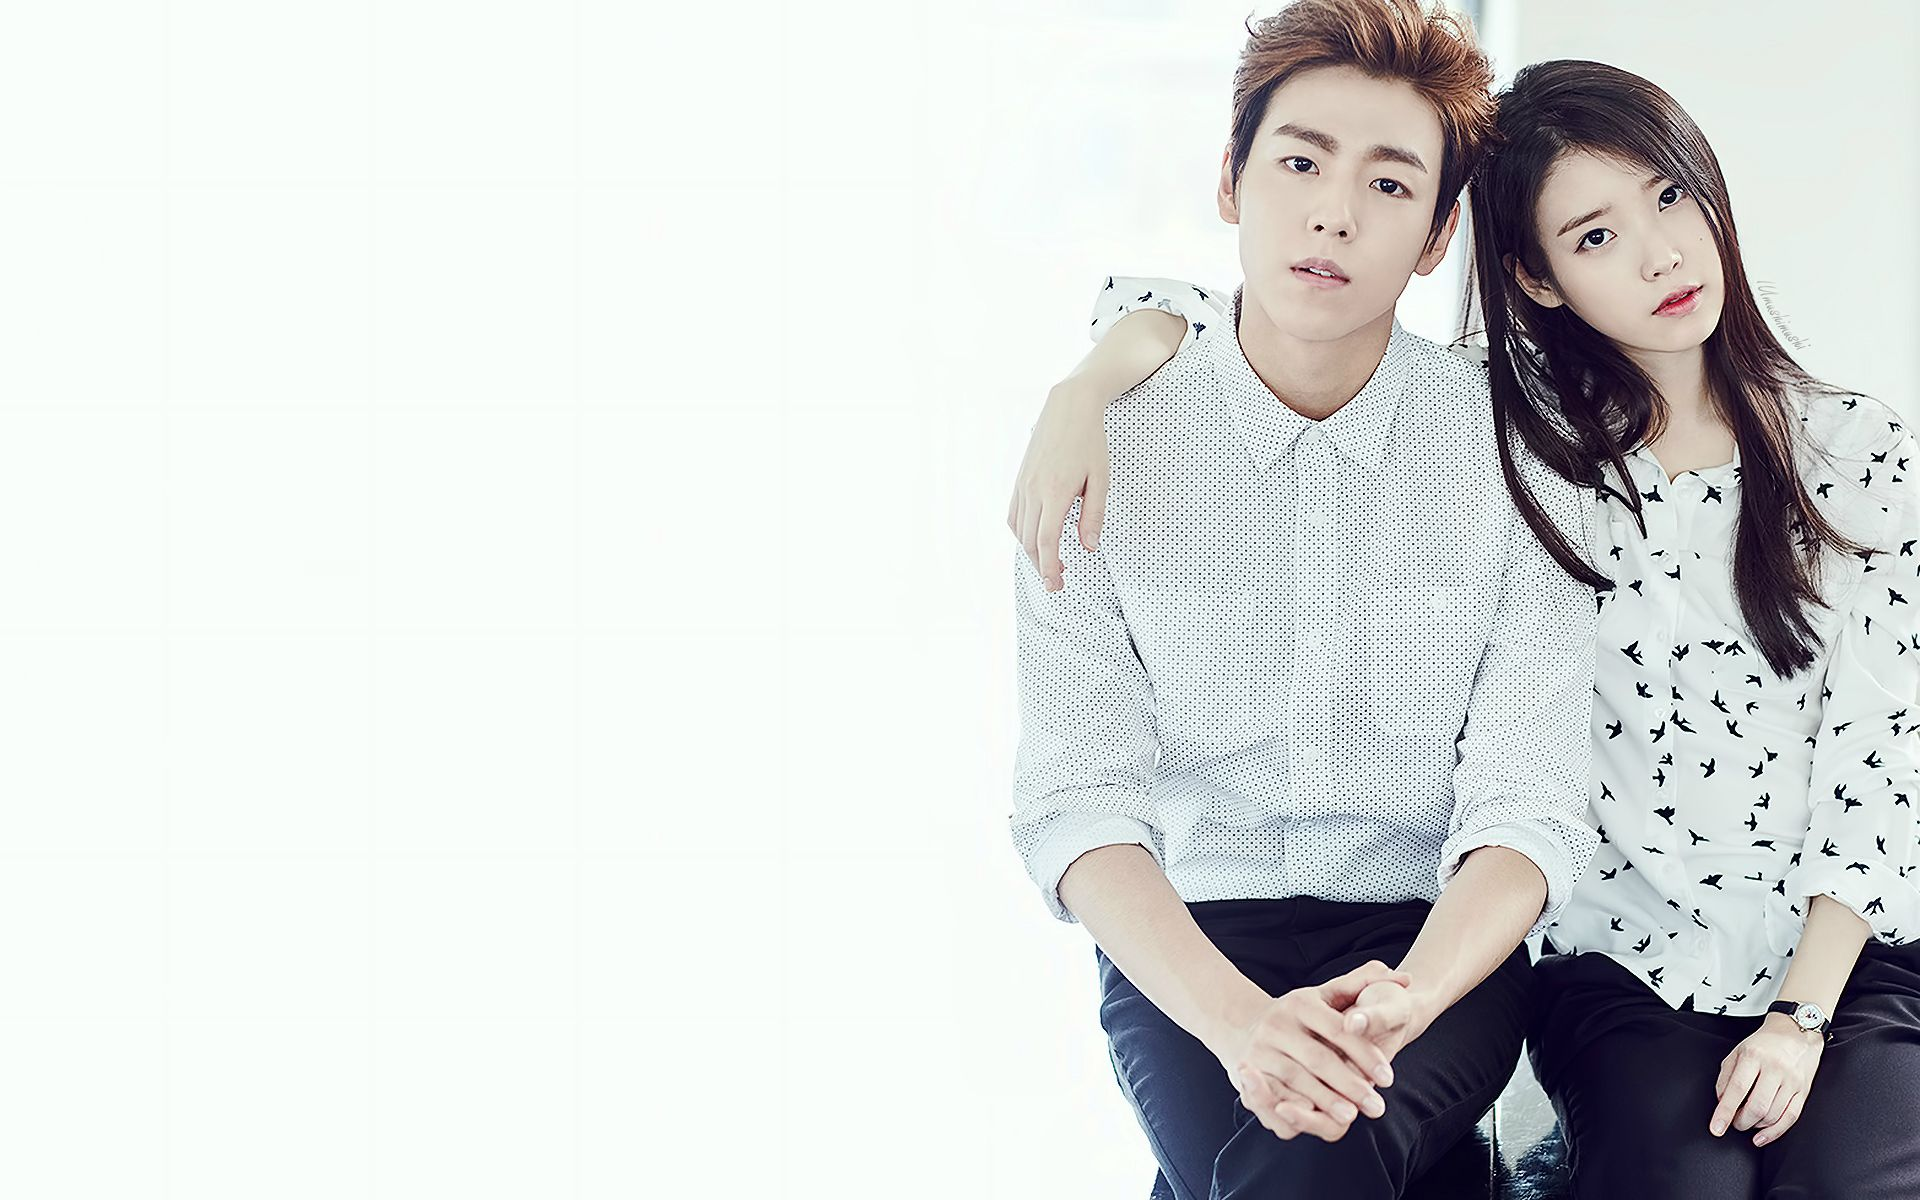 iu and LeeHyunWoo wallpaper 1920x1200